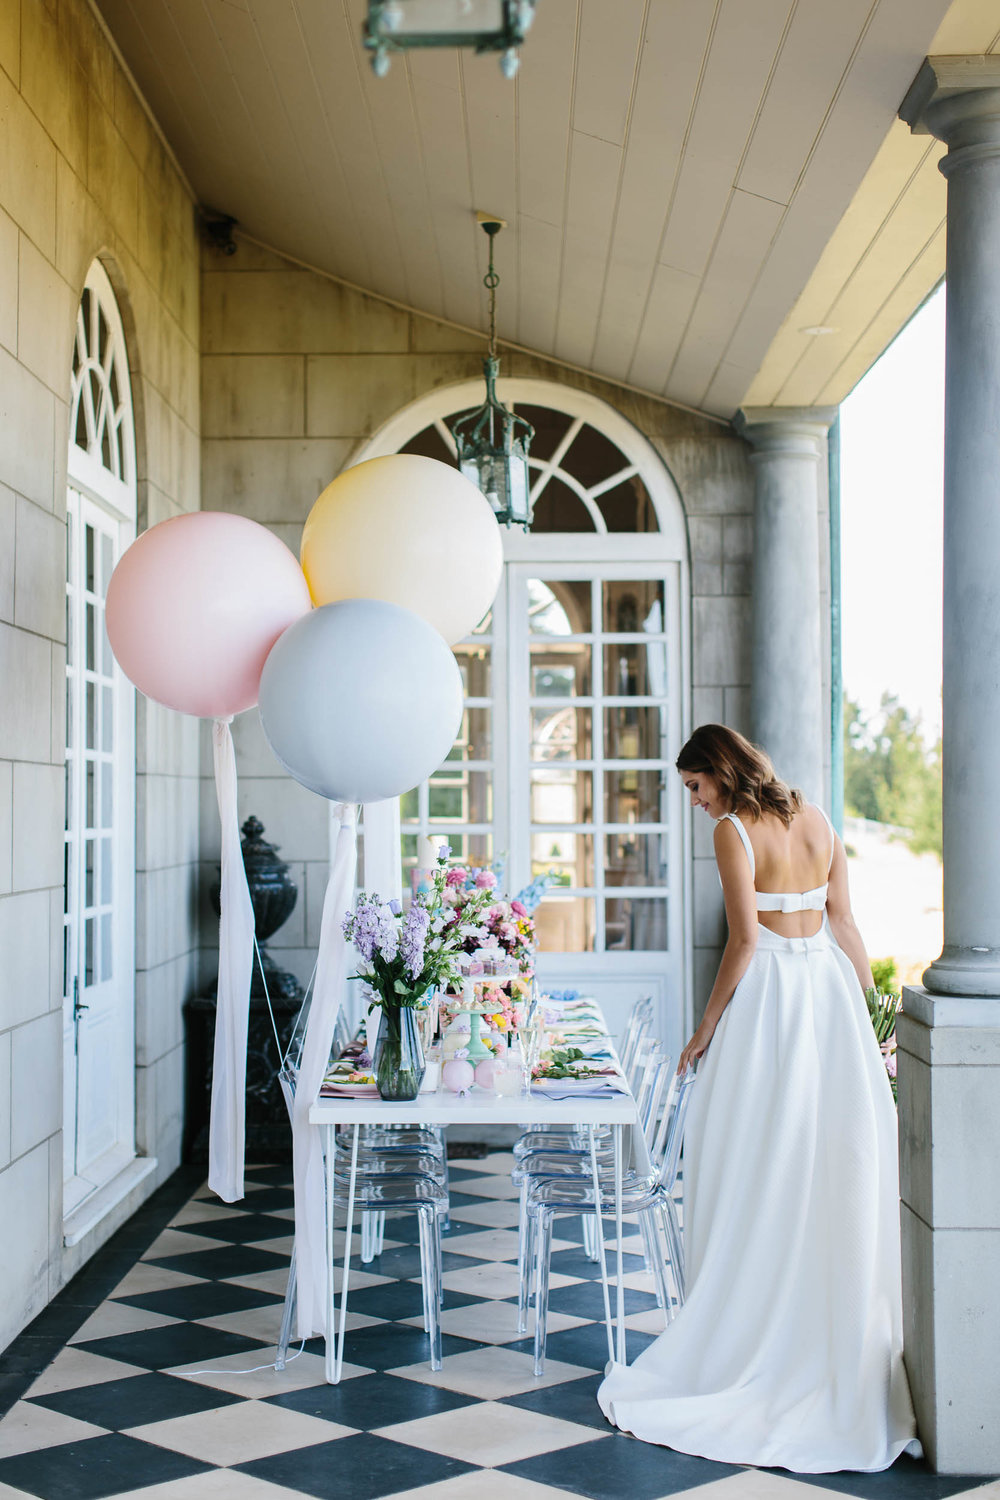 Bride in a Backless Wedding Dress with Pastel Balloons | Wedding Photography by Kas Richards